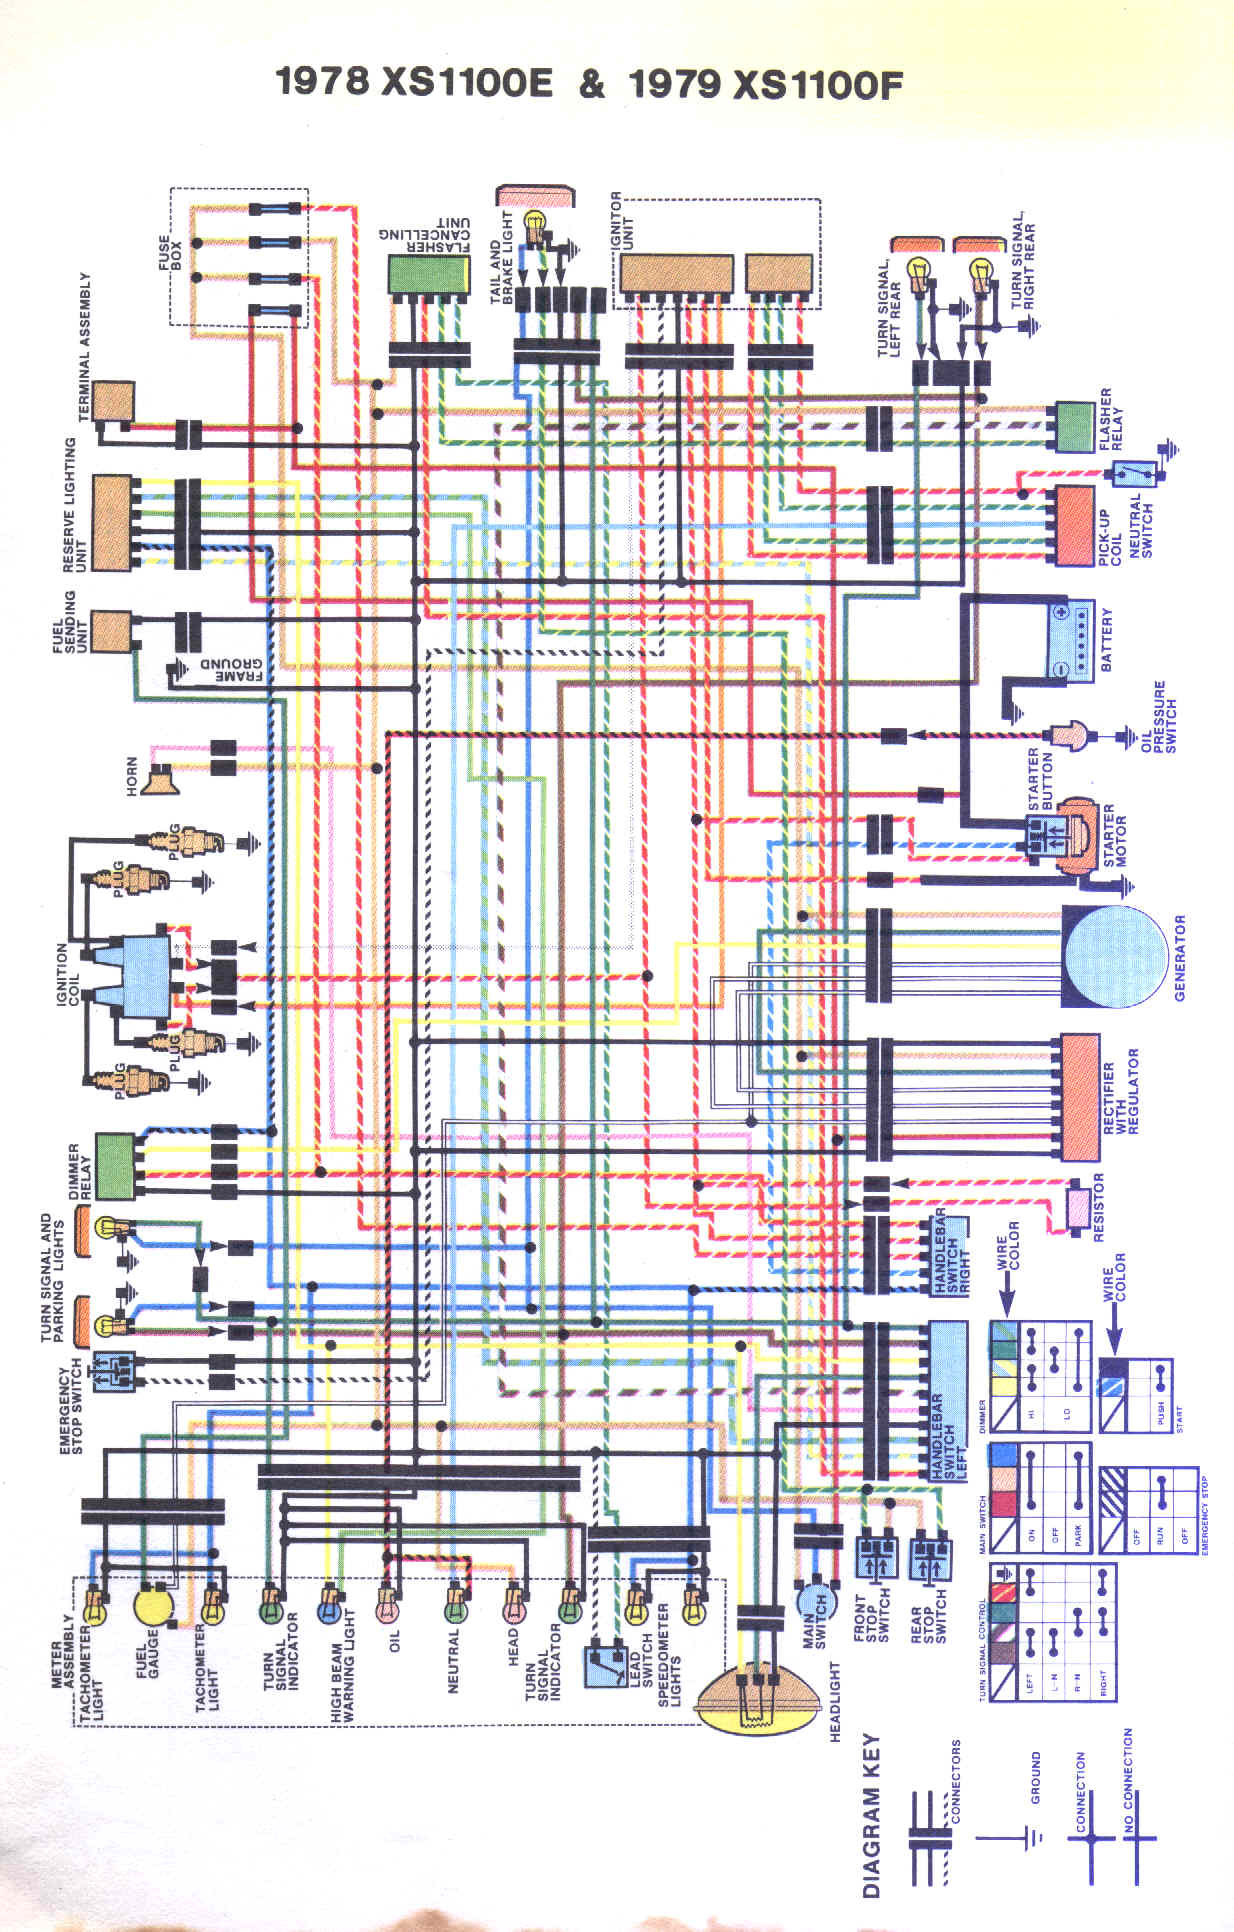 Wiring Diagrams Vt750 Diagram 197879 Xs11